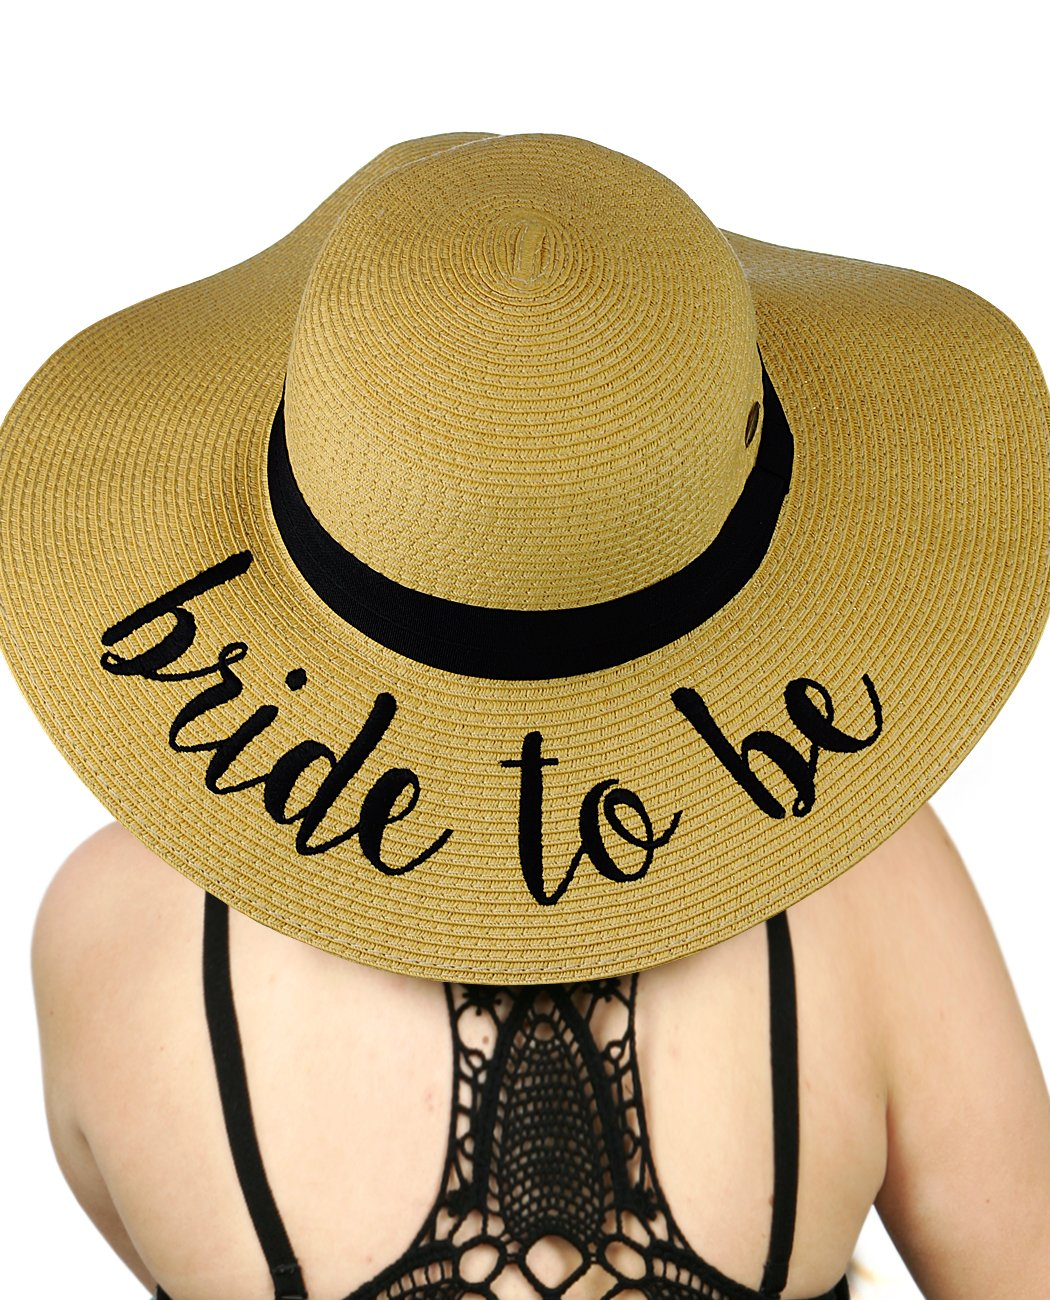 C.C Women's Paper Weaved Crushable Beach Embroidered Quote Floppy Brim Sun Hat, Bride to Be